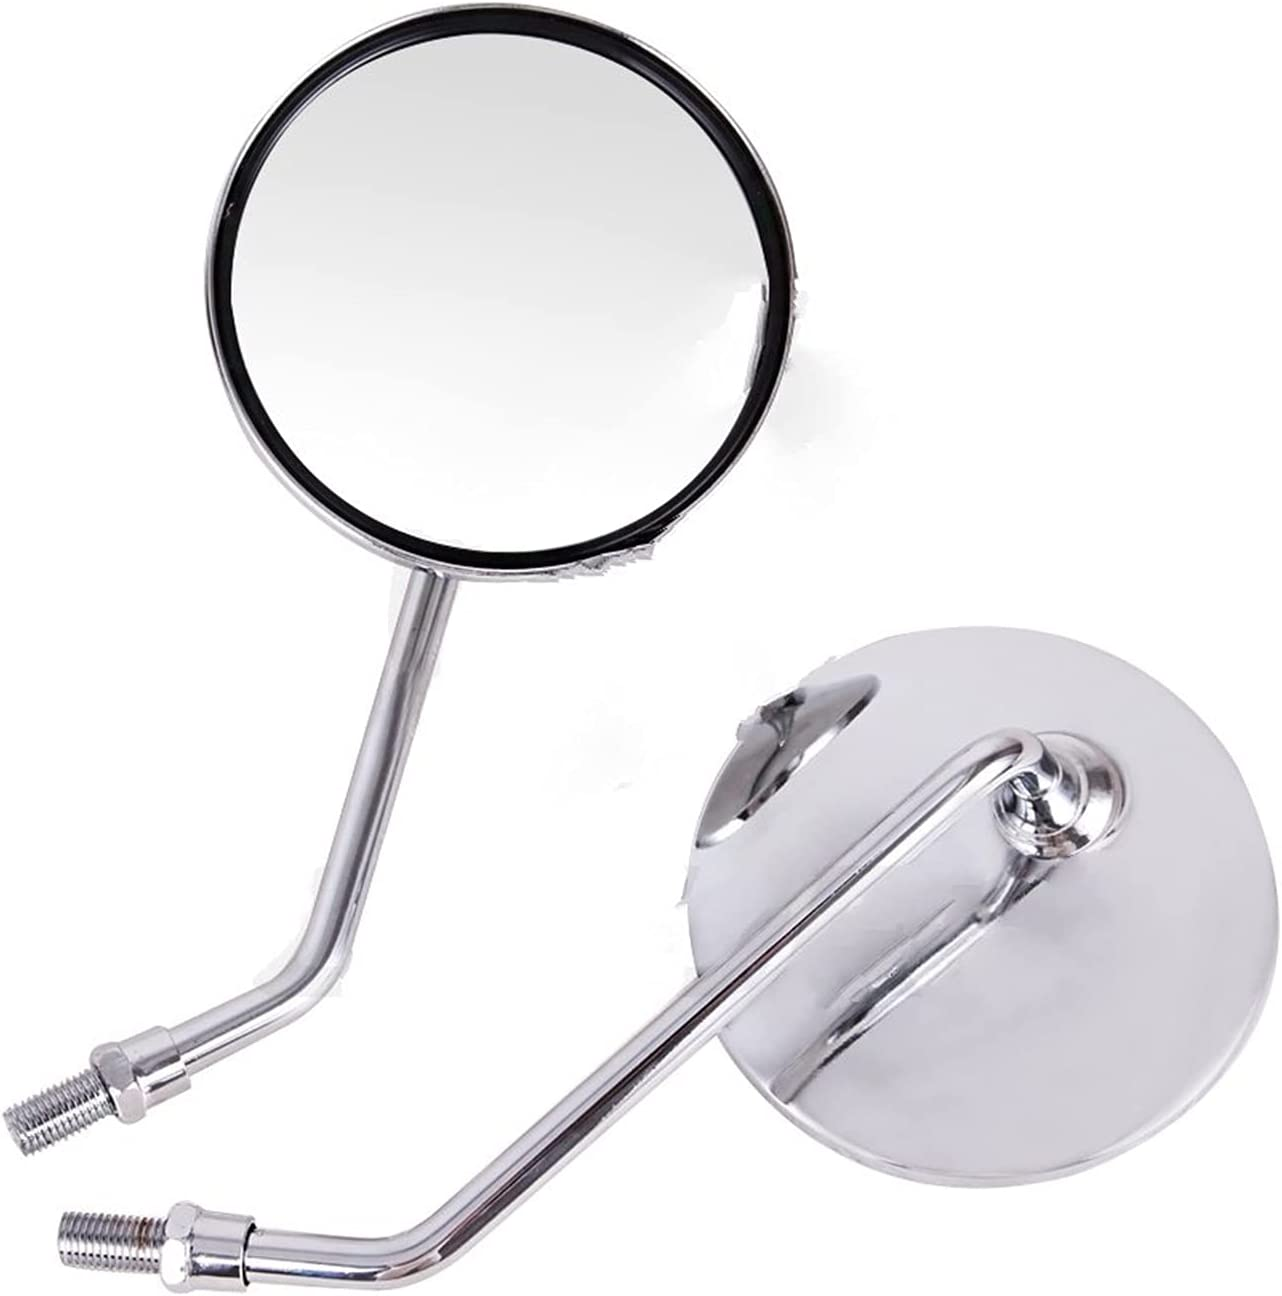 Rearview Mirror Wholesale Universal Scooter Bac Motorcycle Max 63% OFF